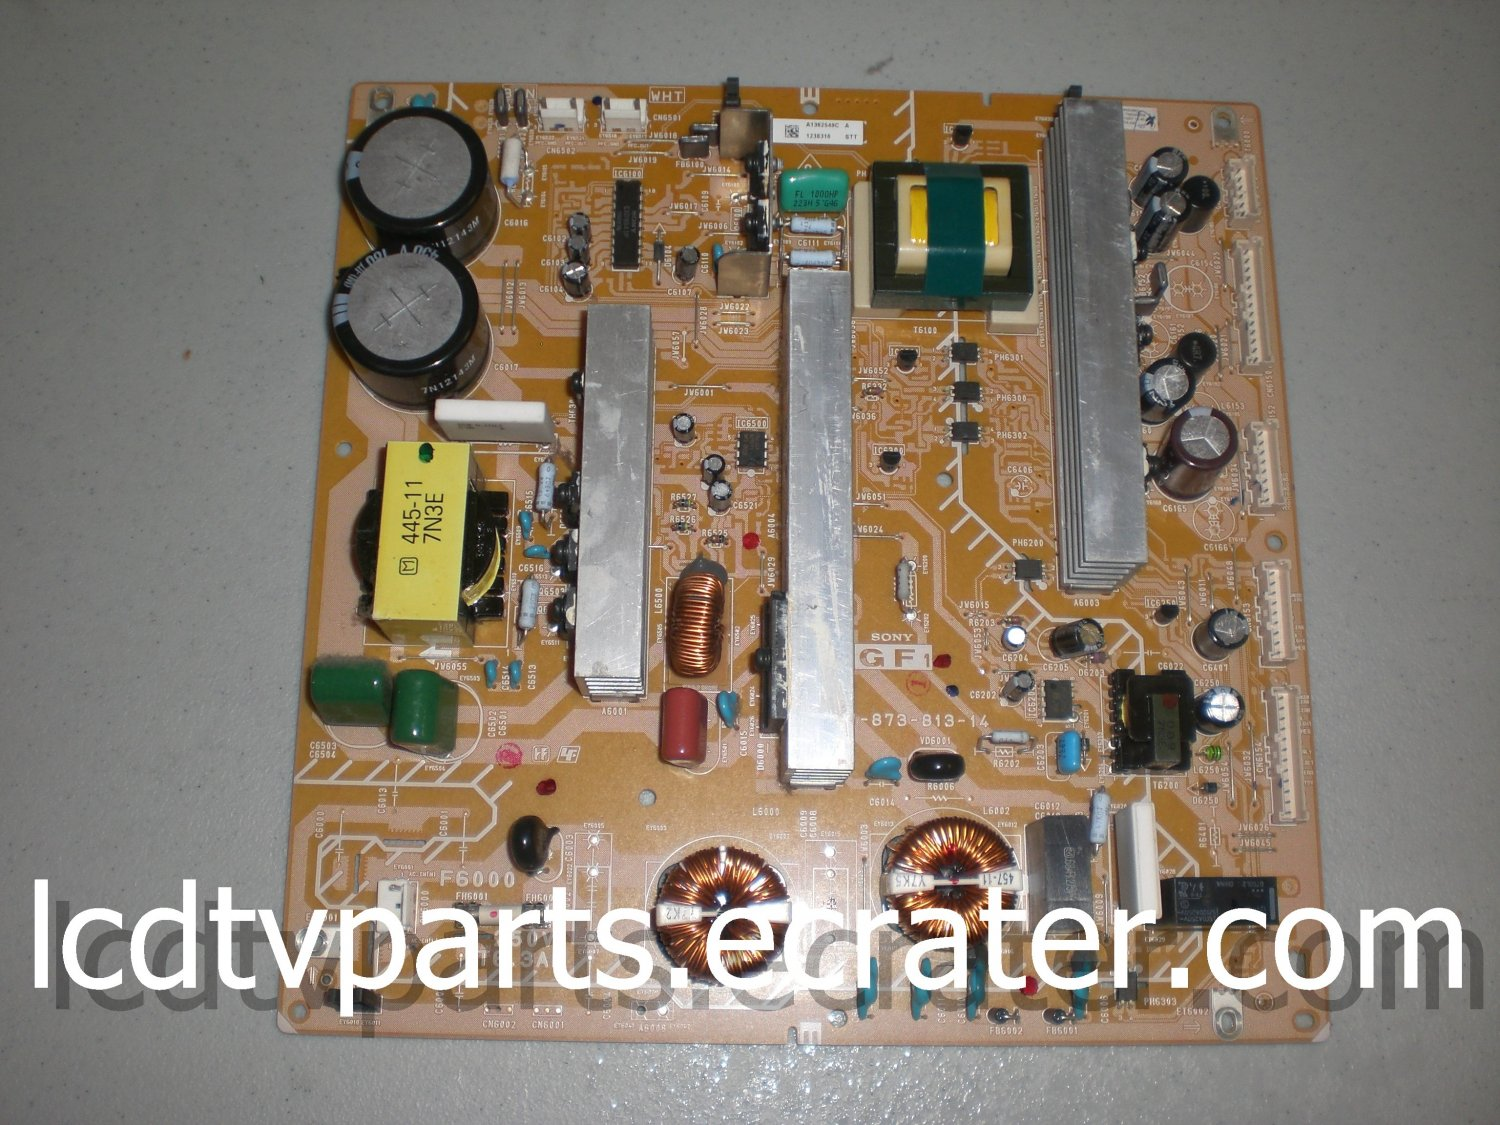 A1362549C, A-1361-279-A, A-1362-549-C, A1362549C, 1-873-813-14, Power Supply for SONY KDL-4XBR4